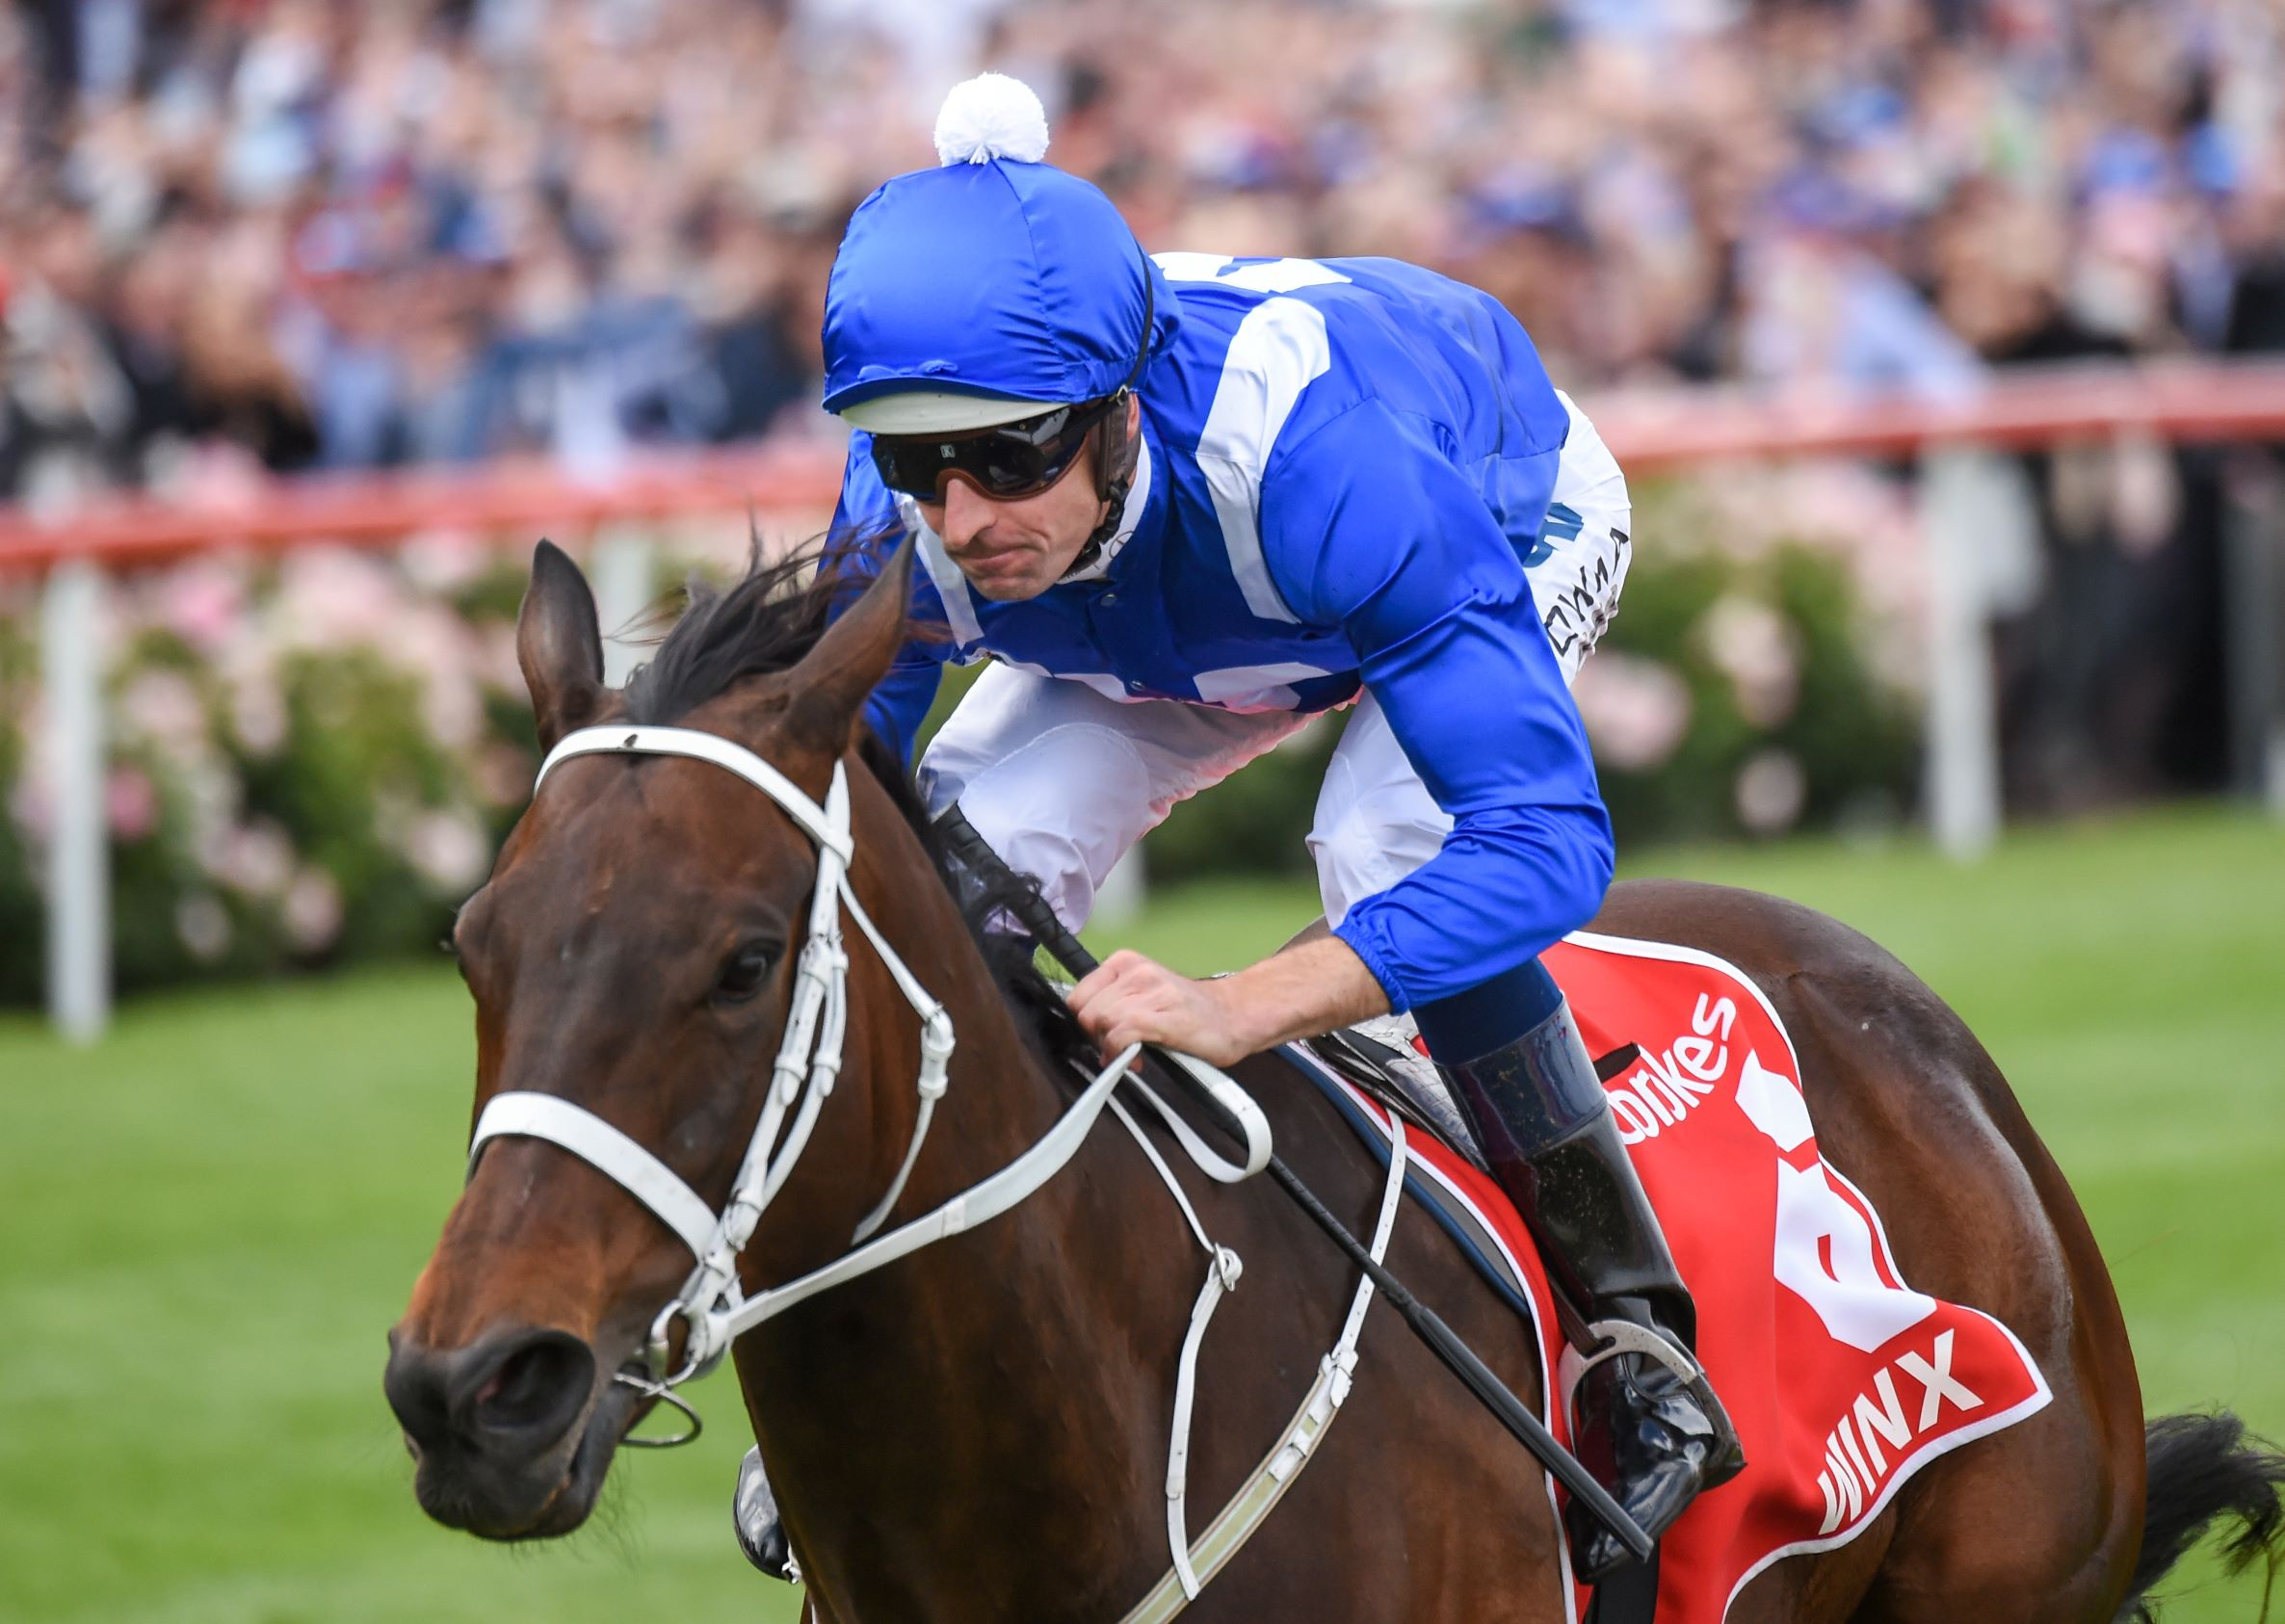 Winx passing the crowd as she wins her fourth cox plate